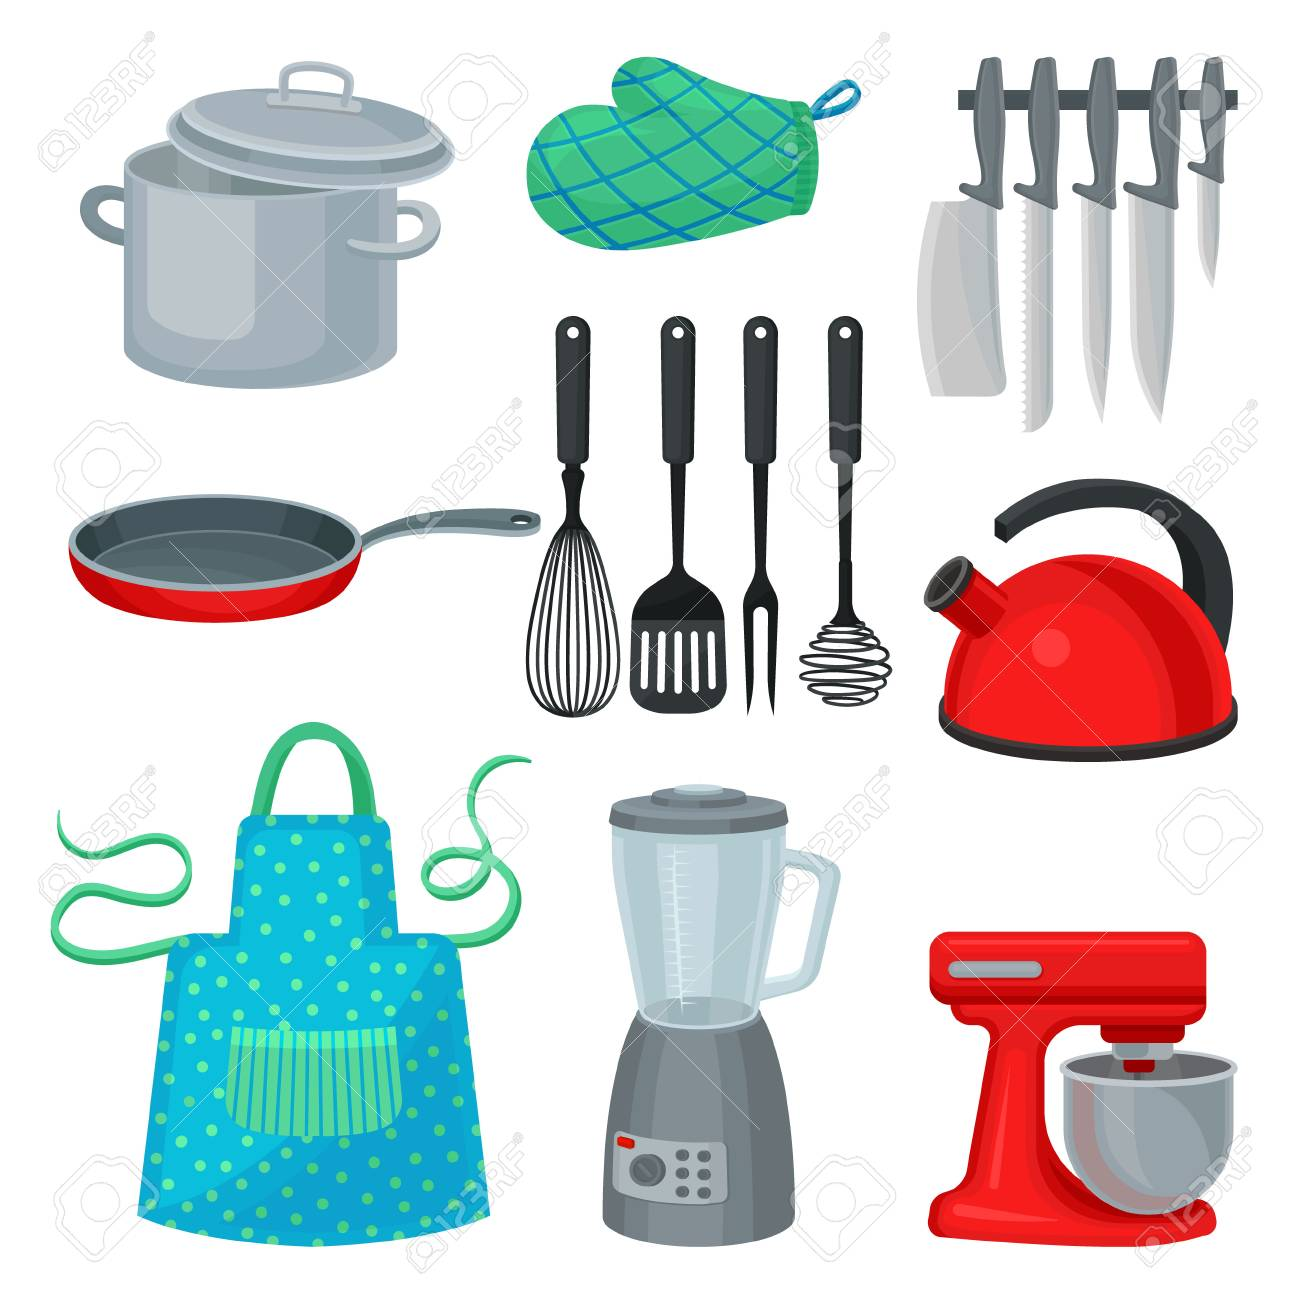 Collection of kitchenware, modern electric appliance and protective..